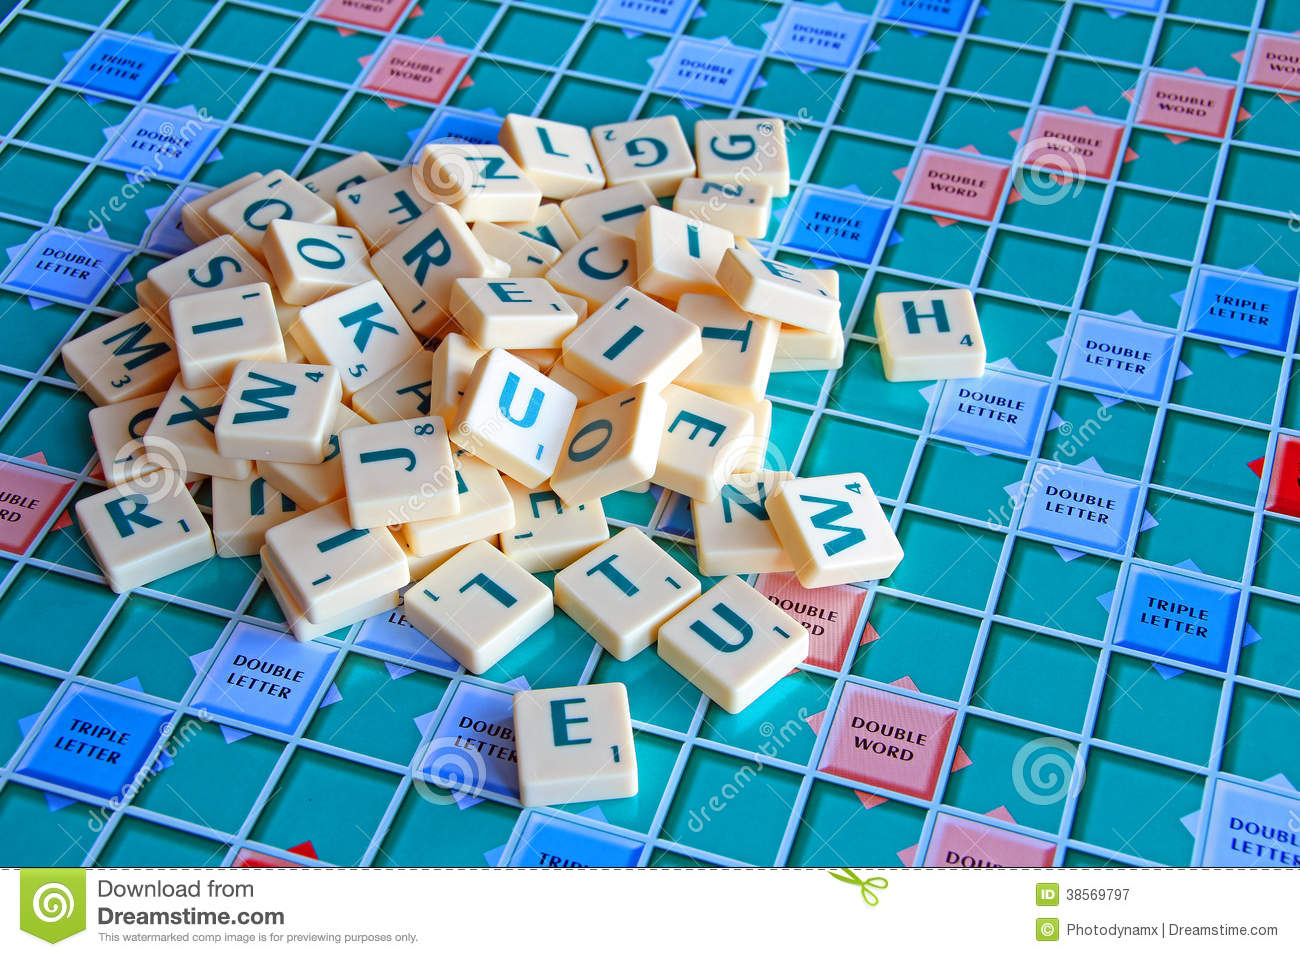 Jumbled Pile Of Scrabble Tiles Stock Image - Image of scrabble ...